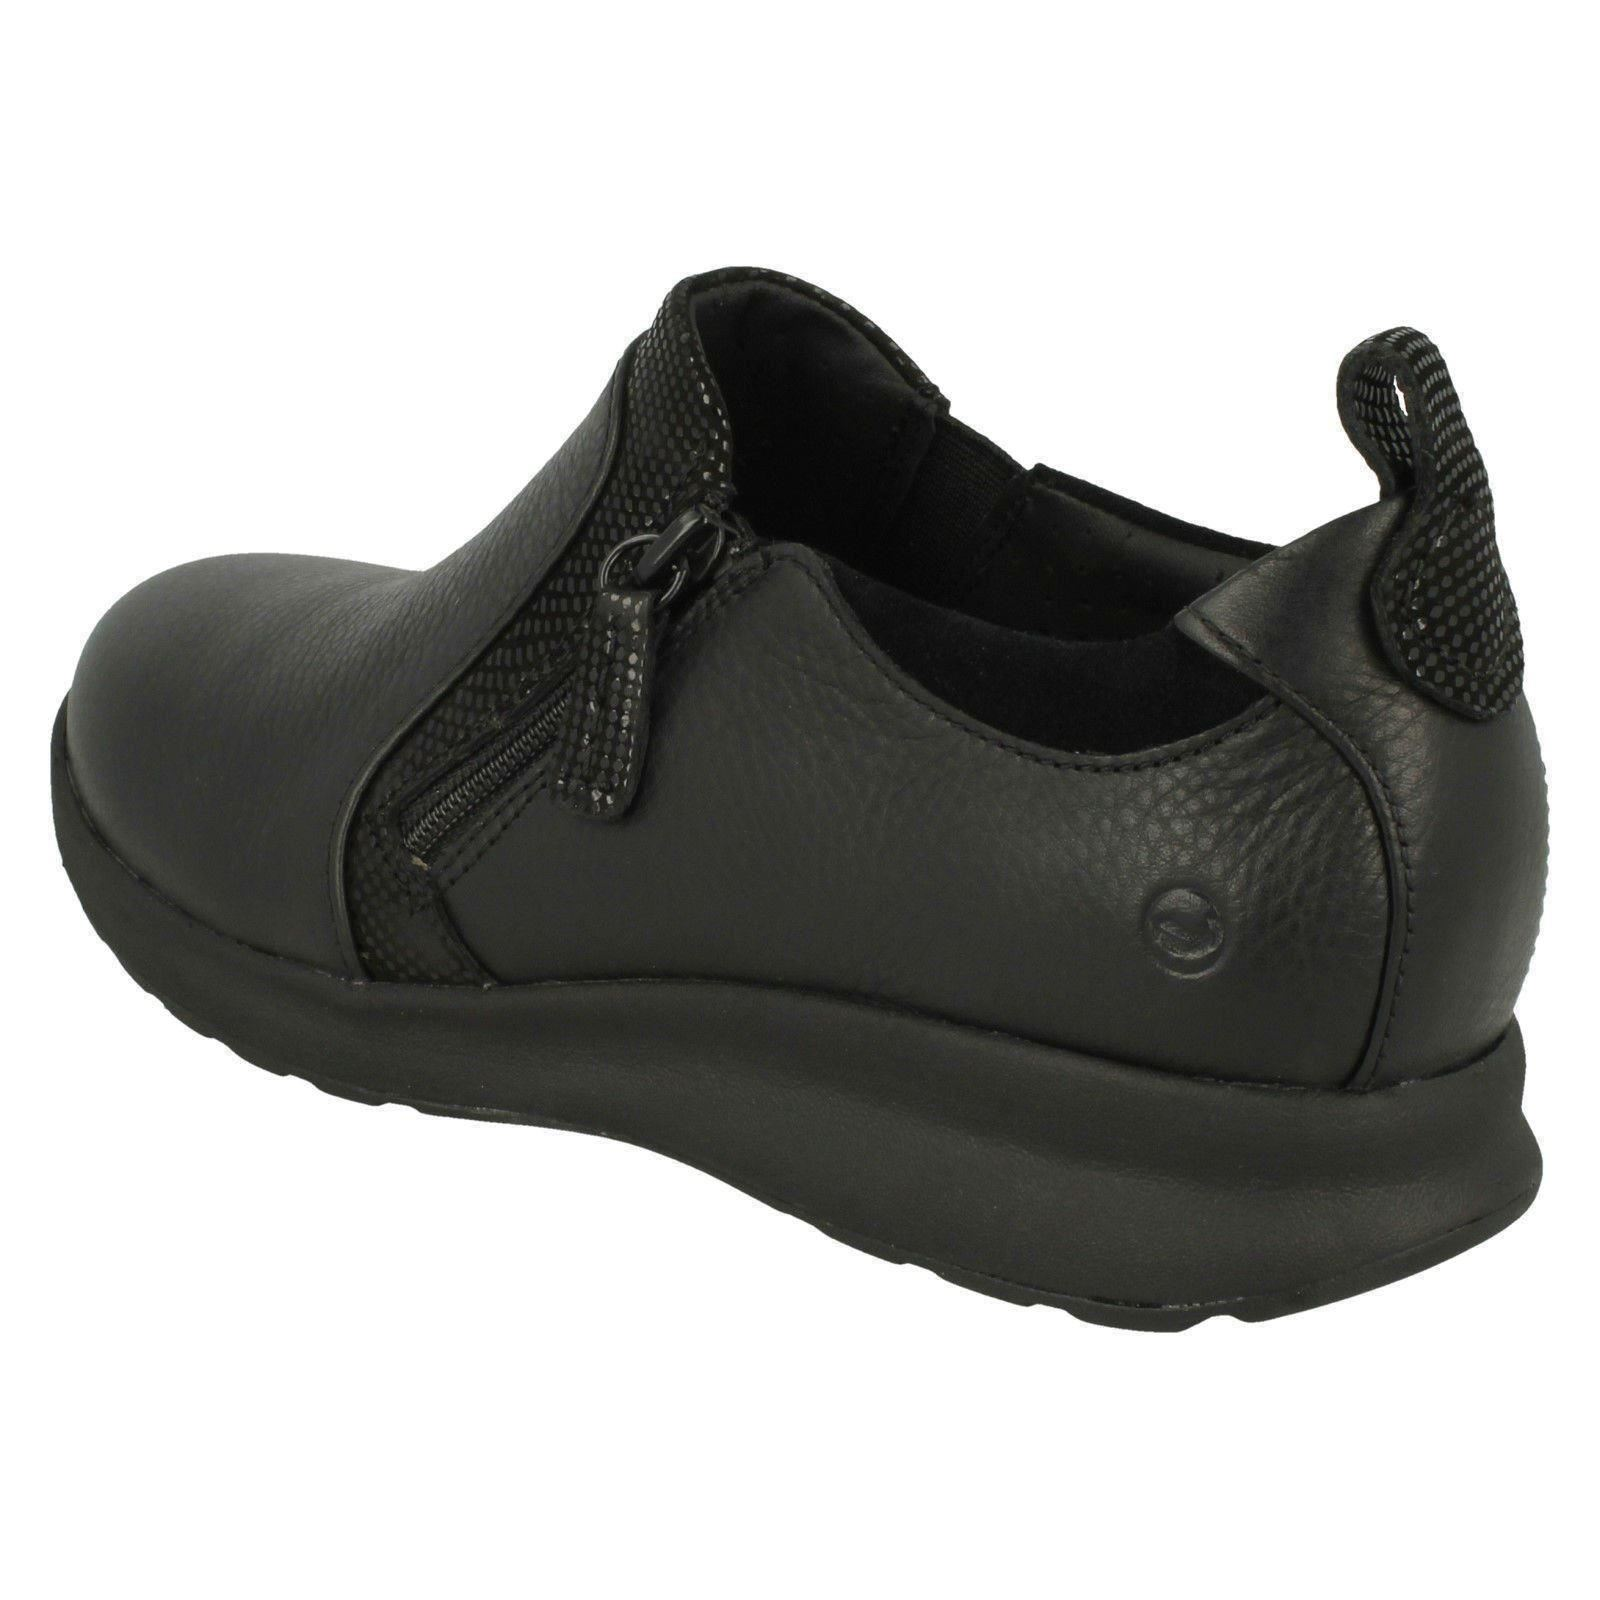 'Ladies Clarks' Clarks' Clarks' Unstructured Slip On shoes - Un Adorn Zip 59217d